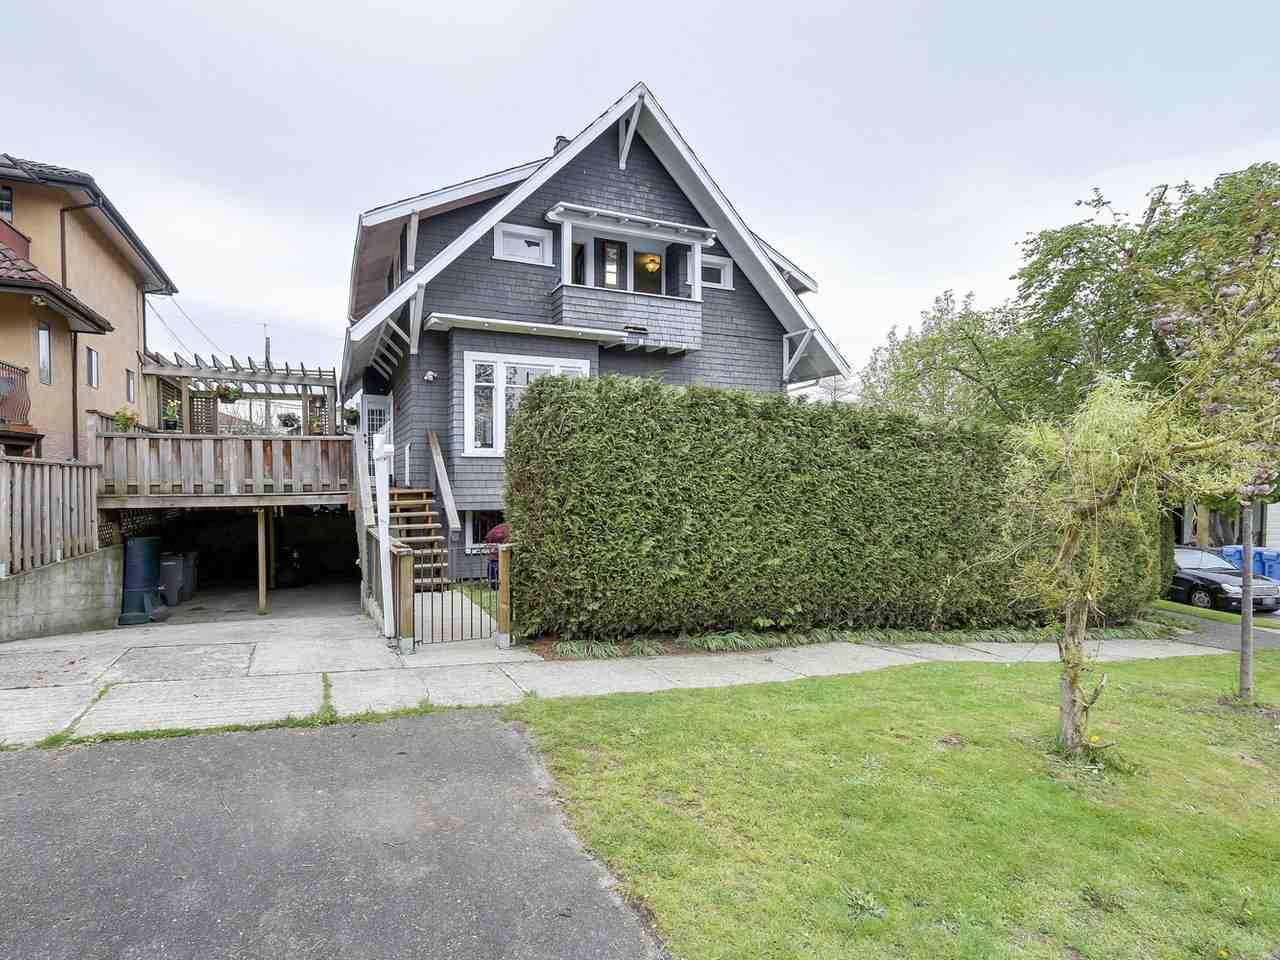 """Main Photo: 2046 STAINSBURY Avenue in Vancouver: Victoria VE House for sale in """"Trout Lake"""" (Vancouver East)  : MLS®# R2164595"""